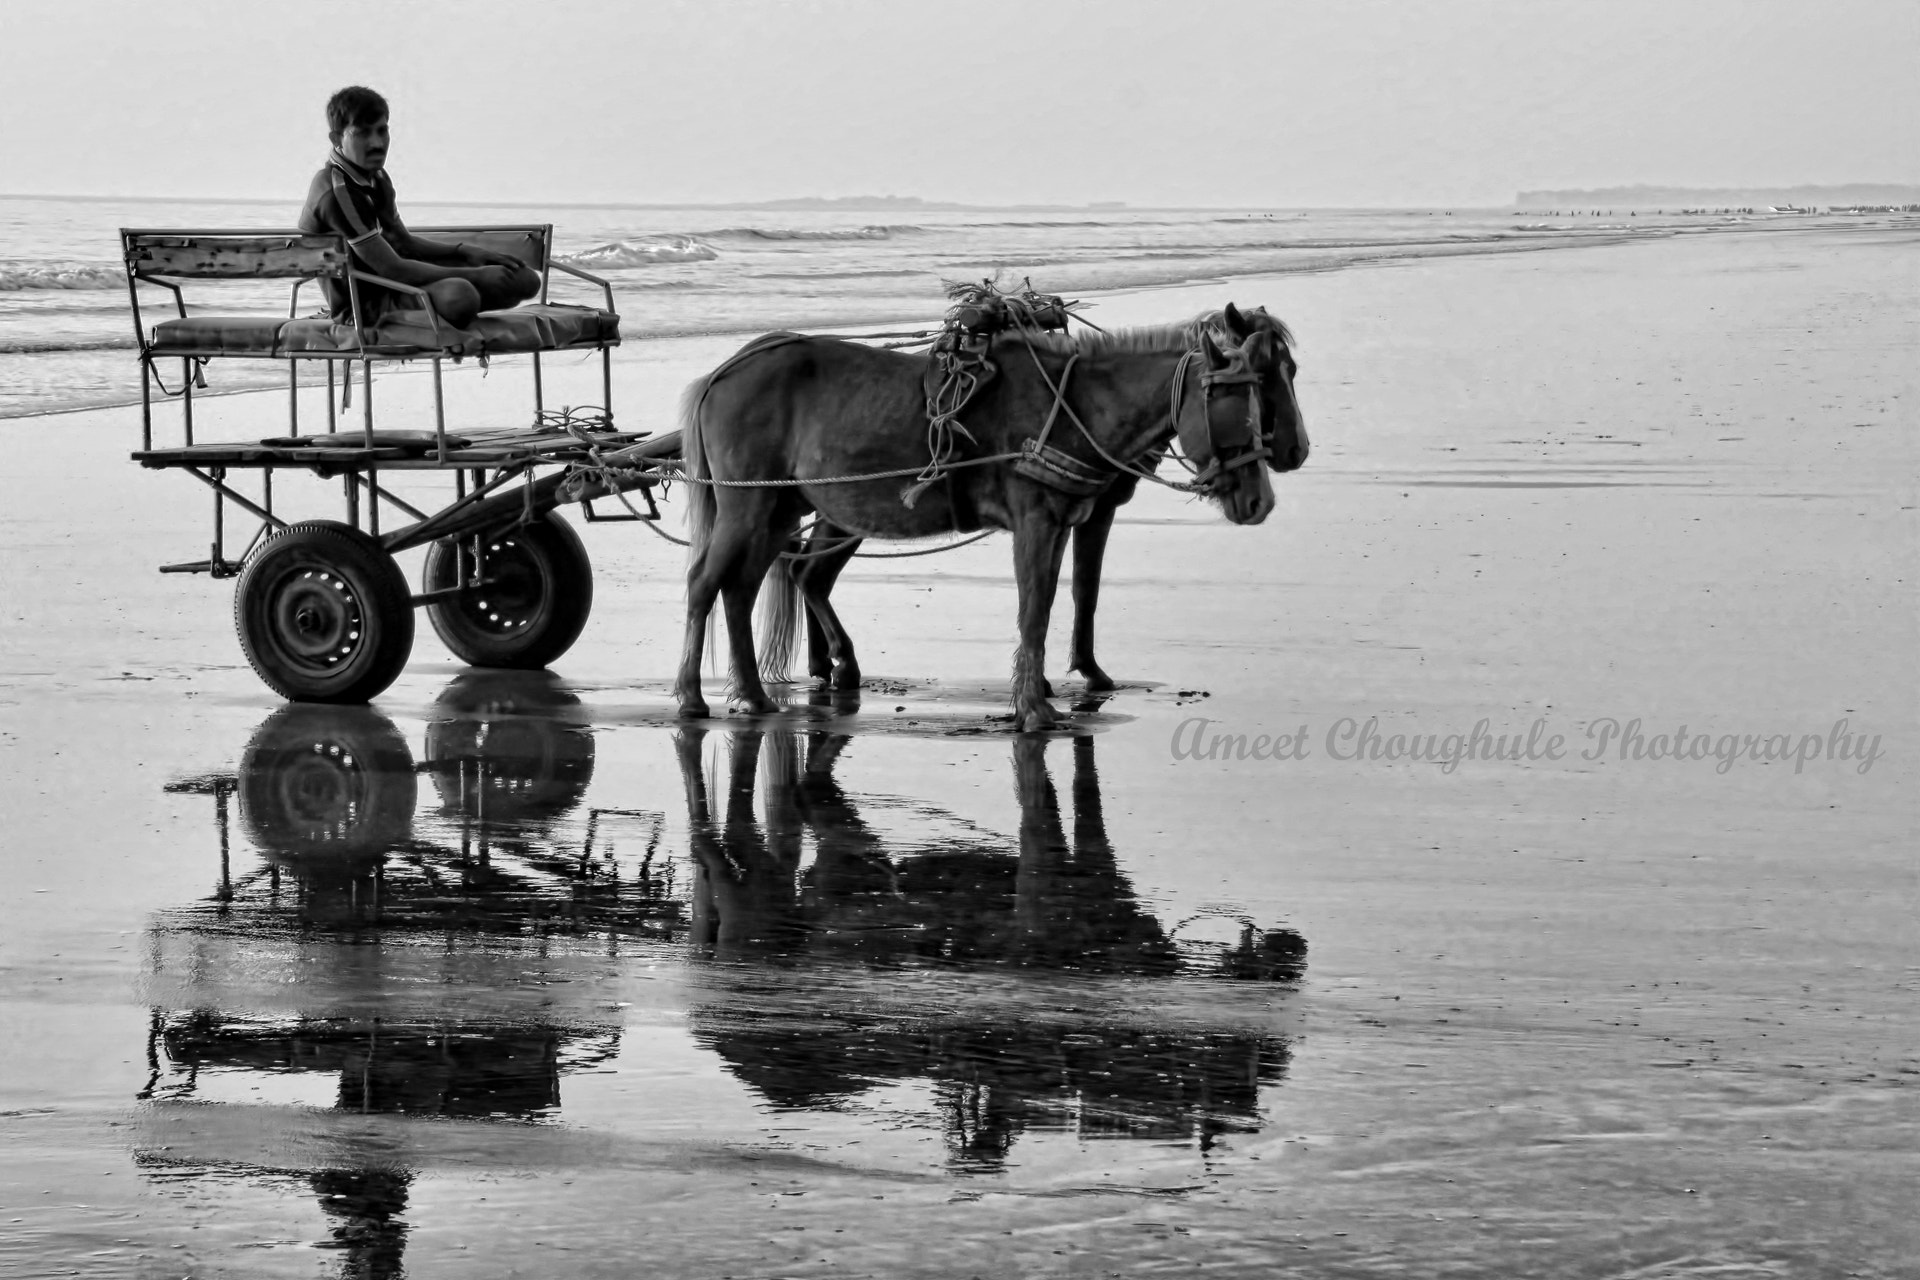 Photograph Reflections-Who feeds whom? by Ameet Choughule on 500px